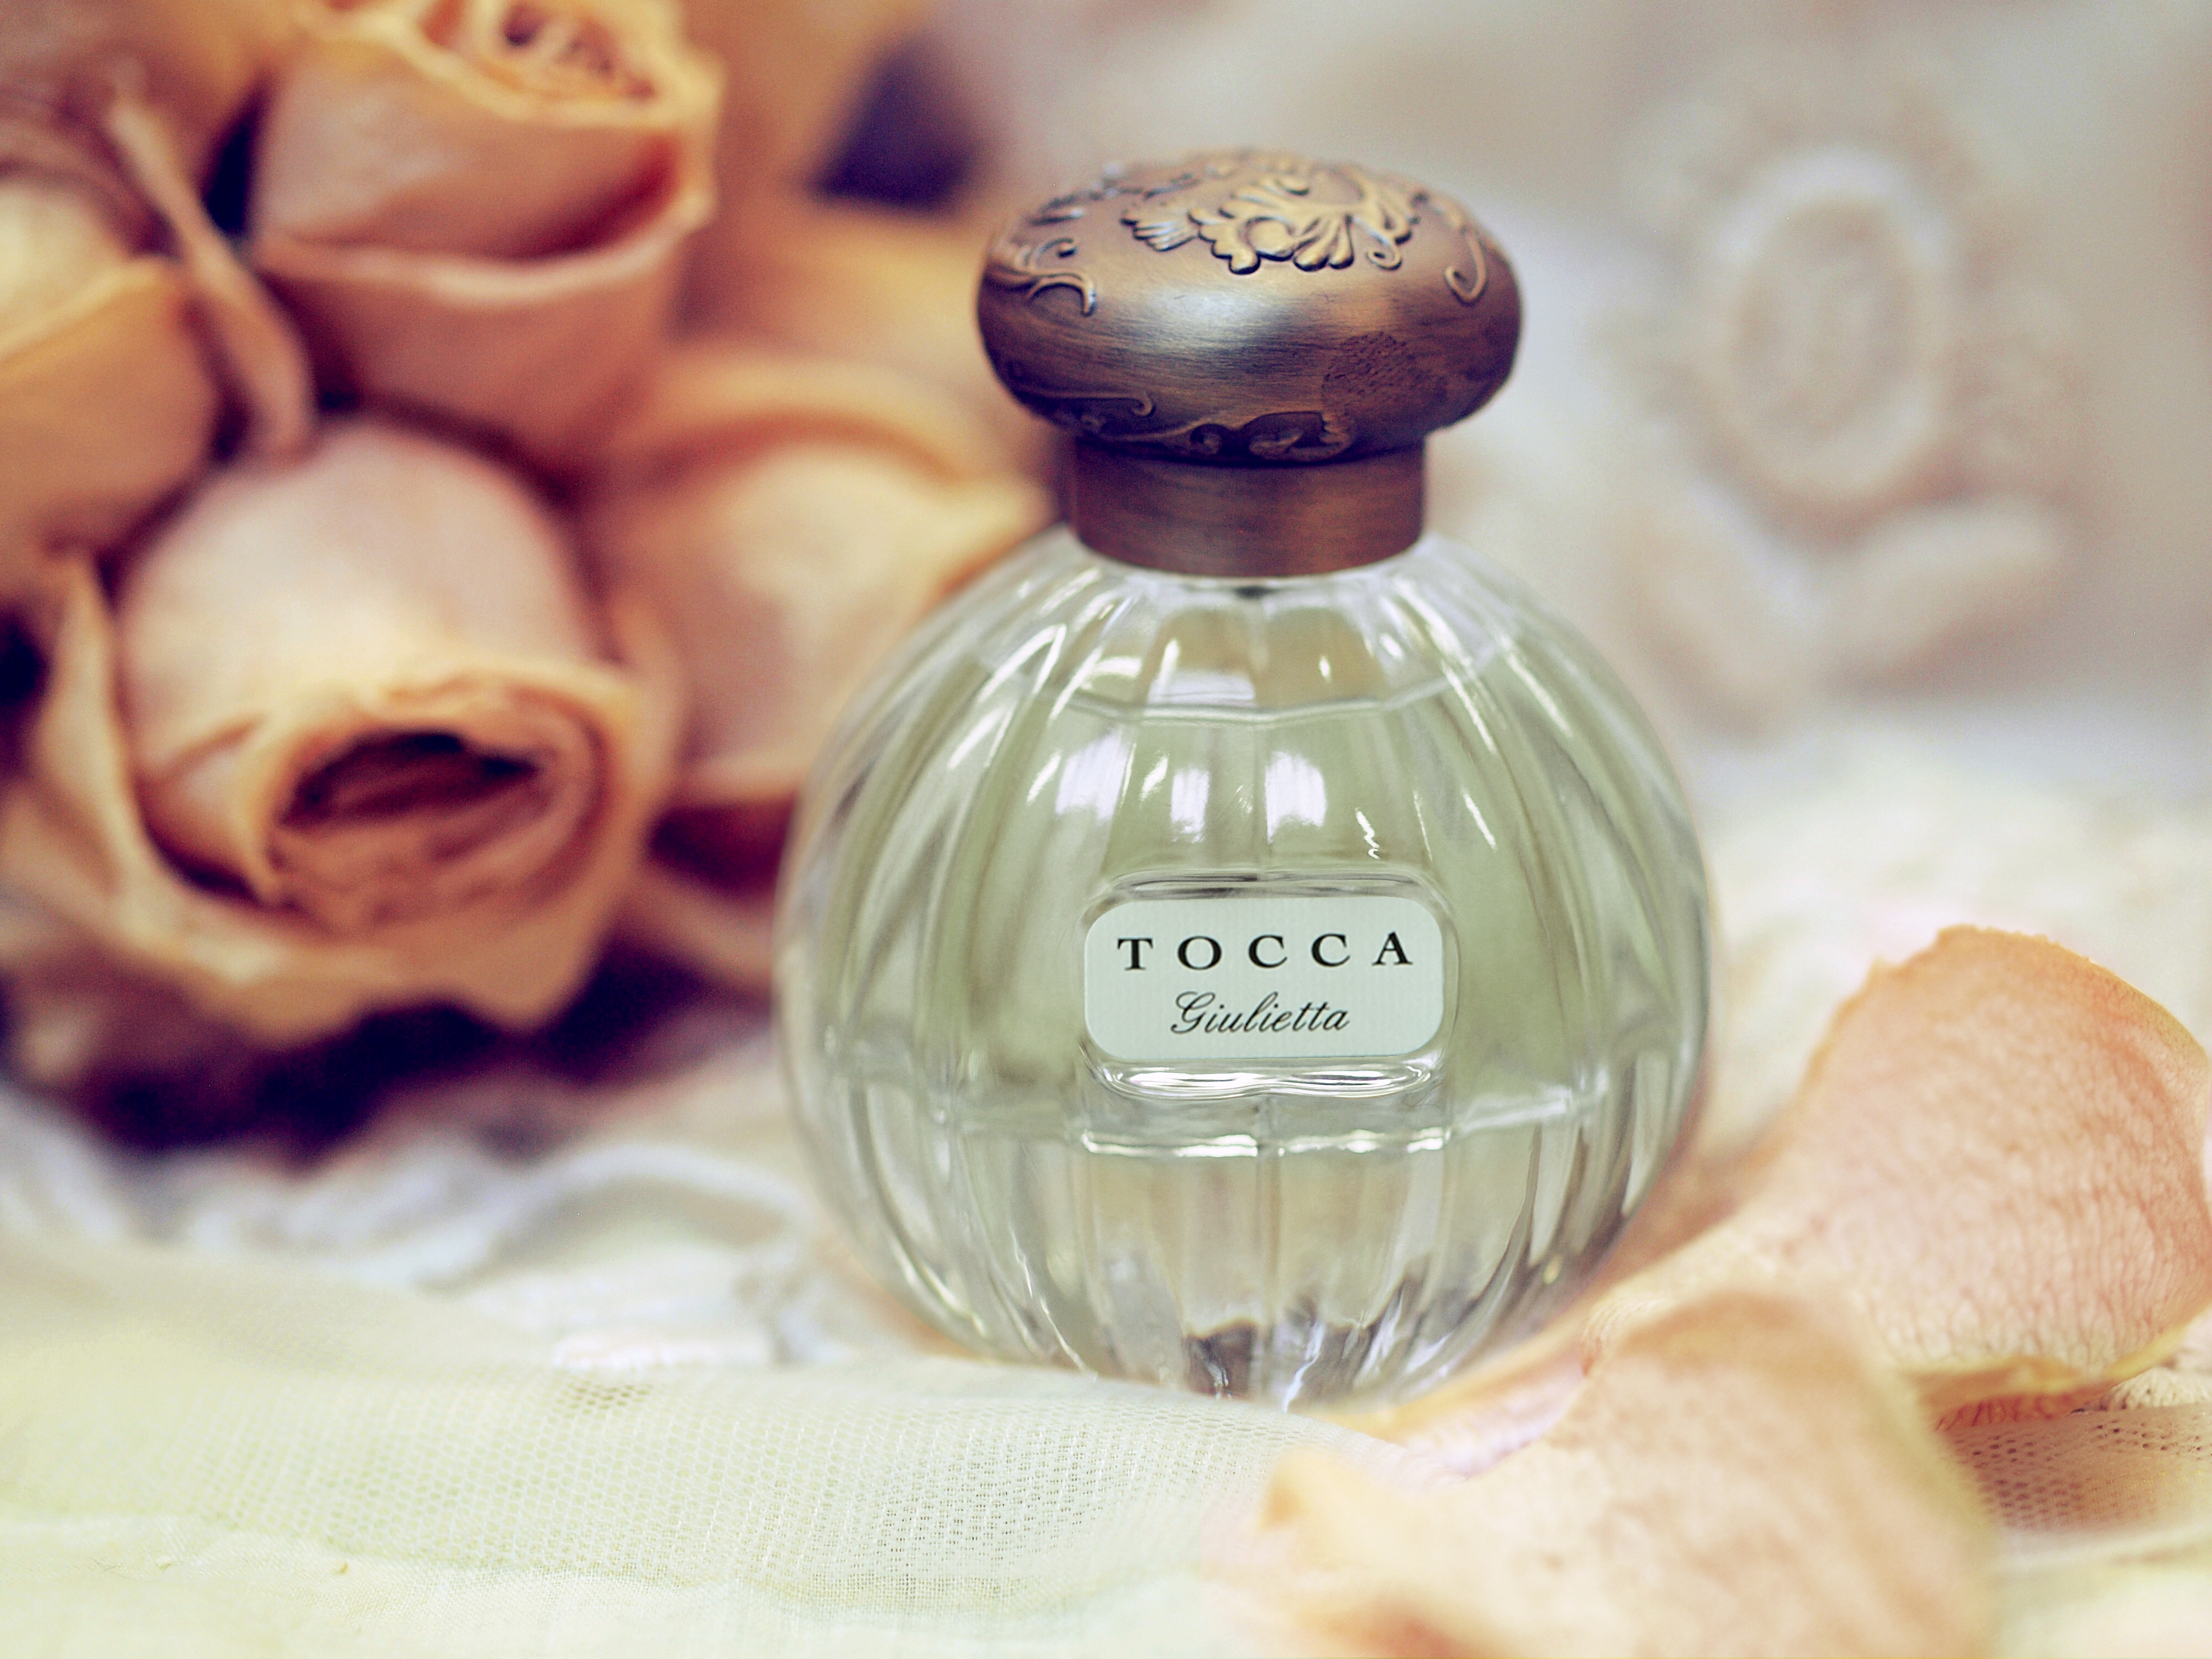 Giulietta and Colette by TOCCA: The Scents of Love